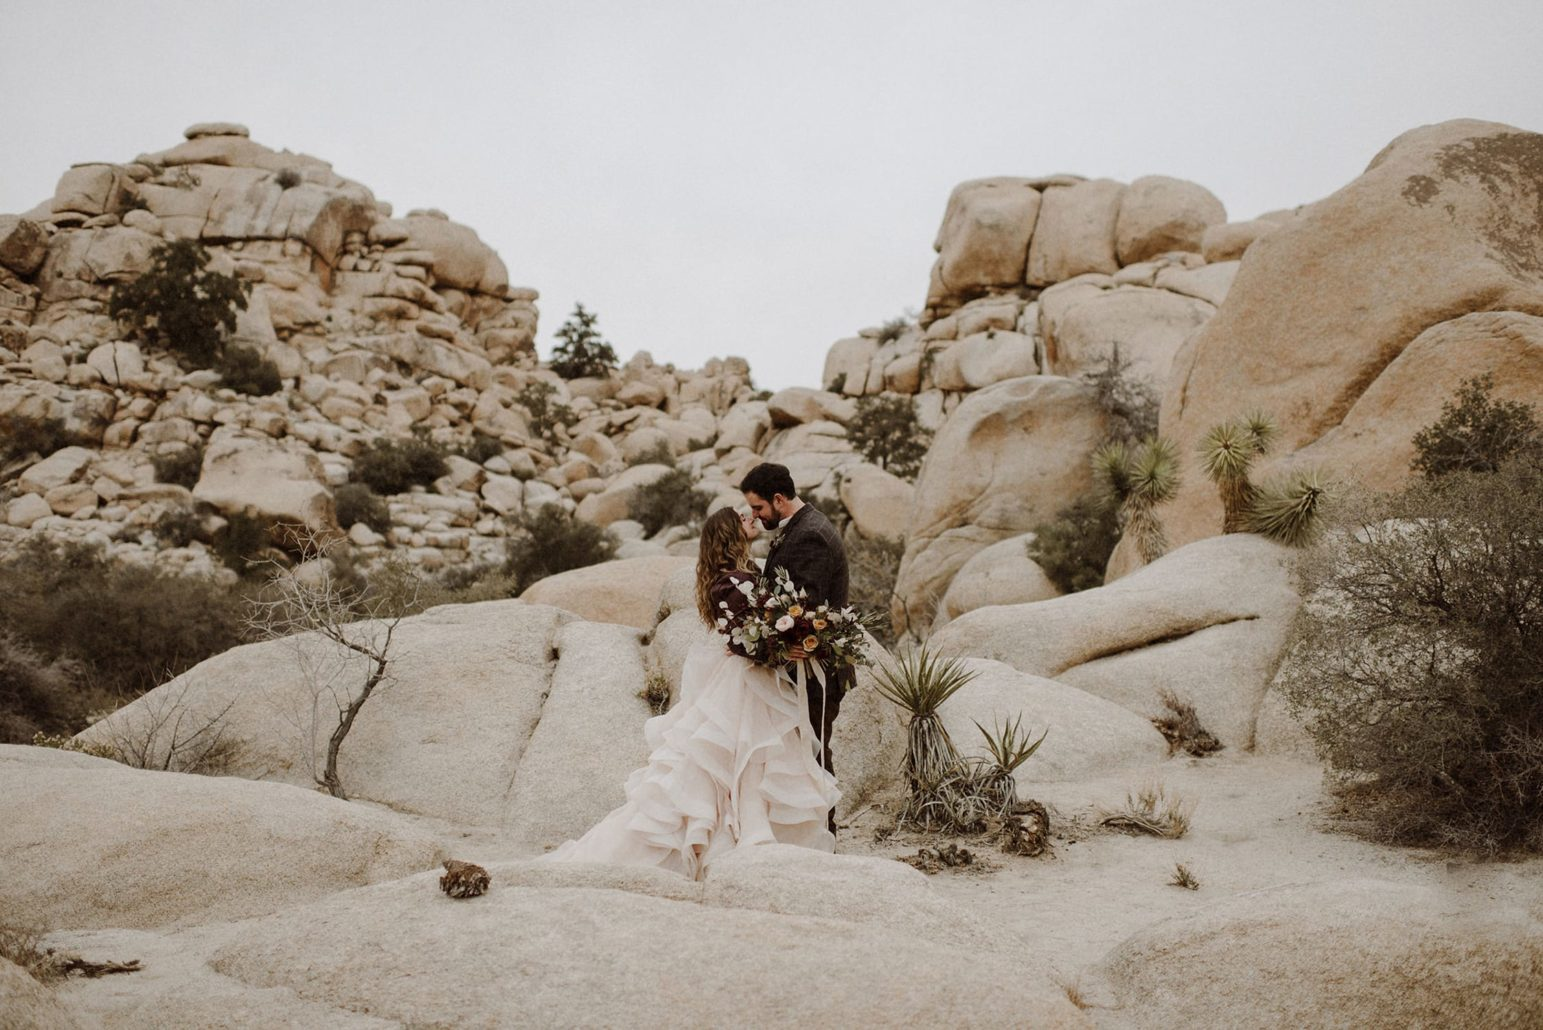 INLINE HOME: California Wedding Photography - Colagrossi & Co. - Intimate Weddings and Adventure Elopements Photography and Films